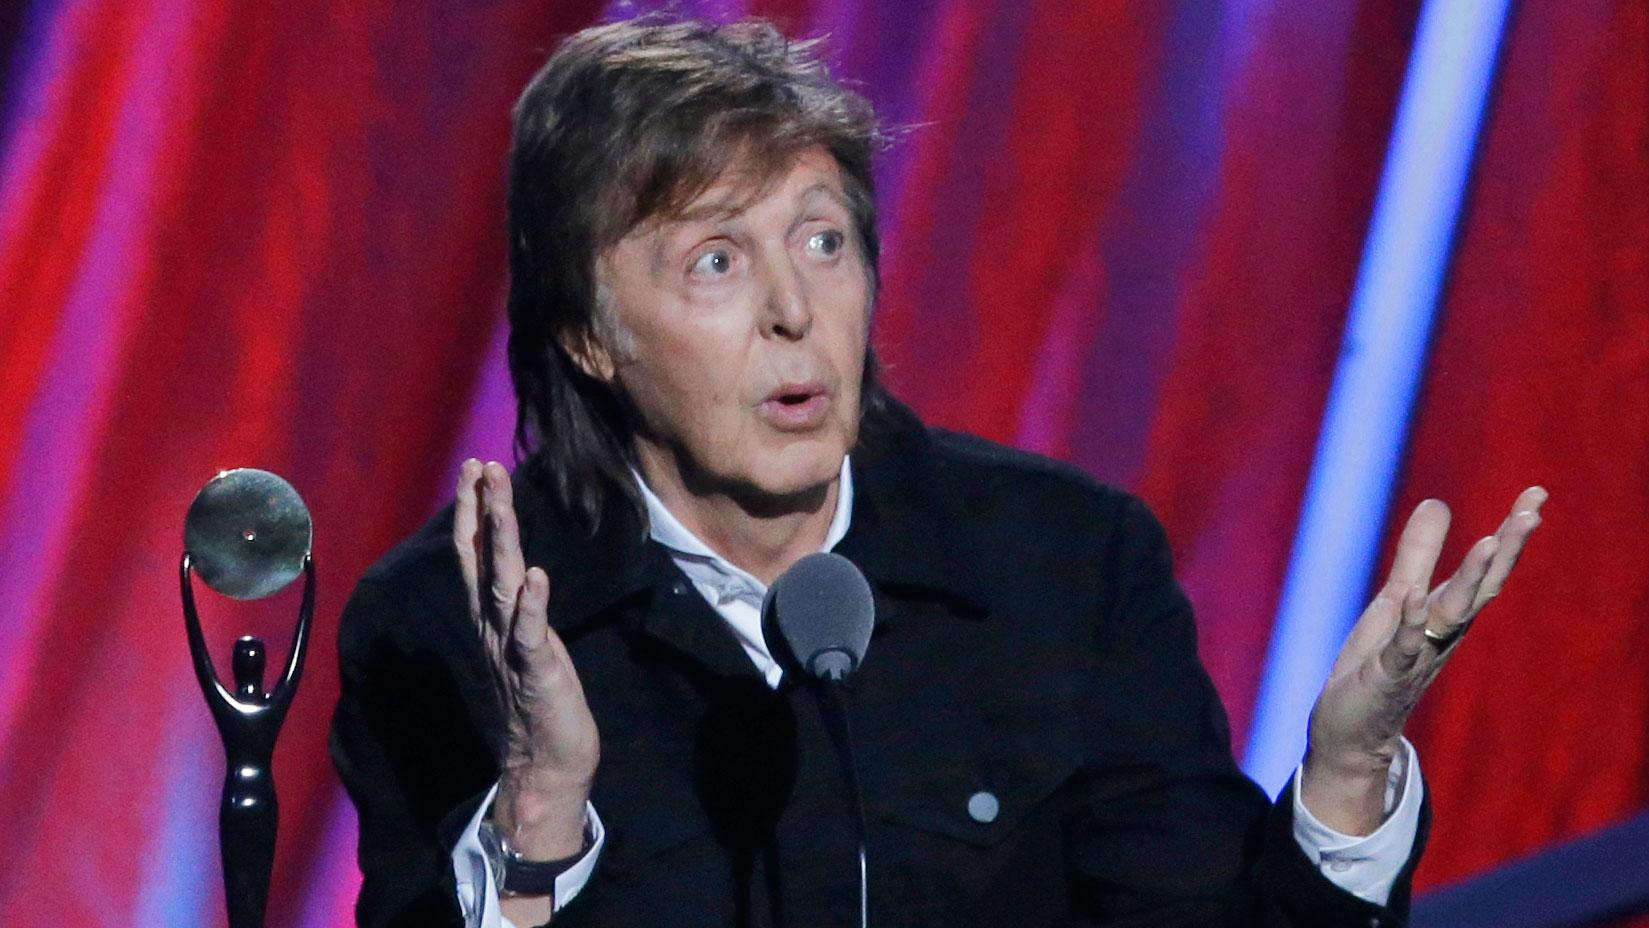 RT @mashable: Responsible grandpa Paul McCartney says he's given up smoking weed. http://t.co/A3a9rNKFBt http://t.co/dNkg7VsVK9